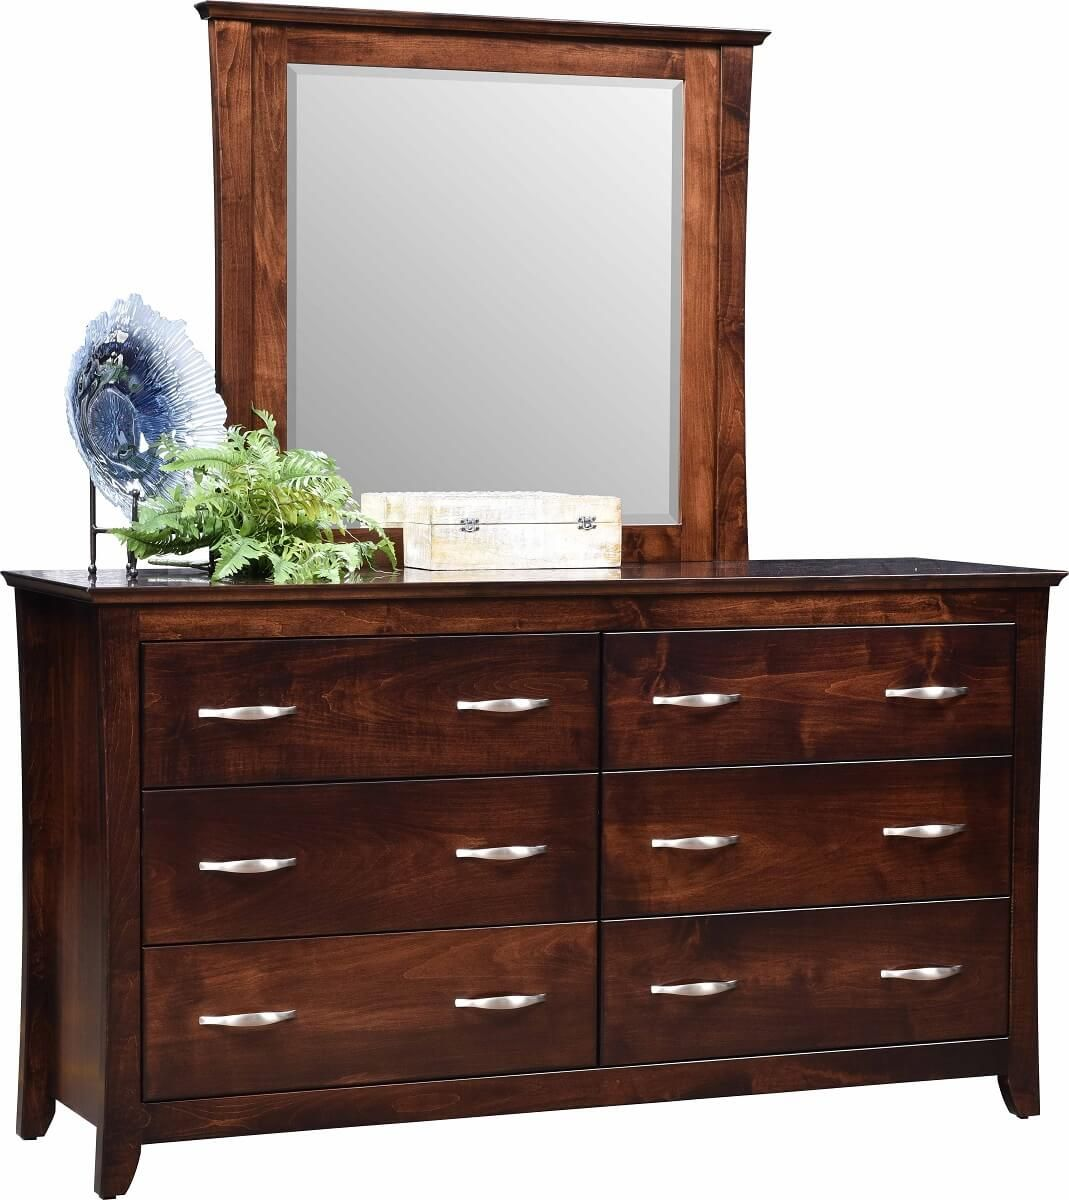 Brown Maple Dresser and Mirror